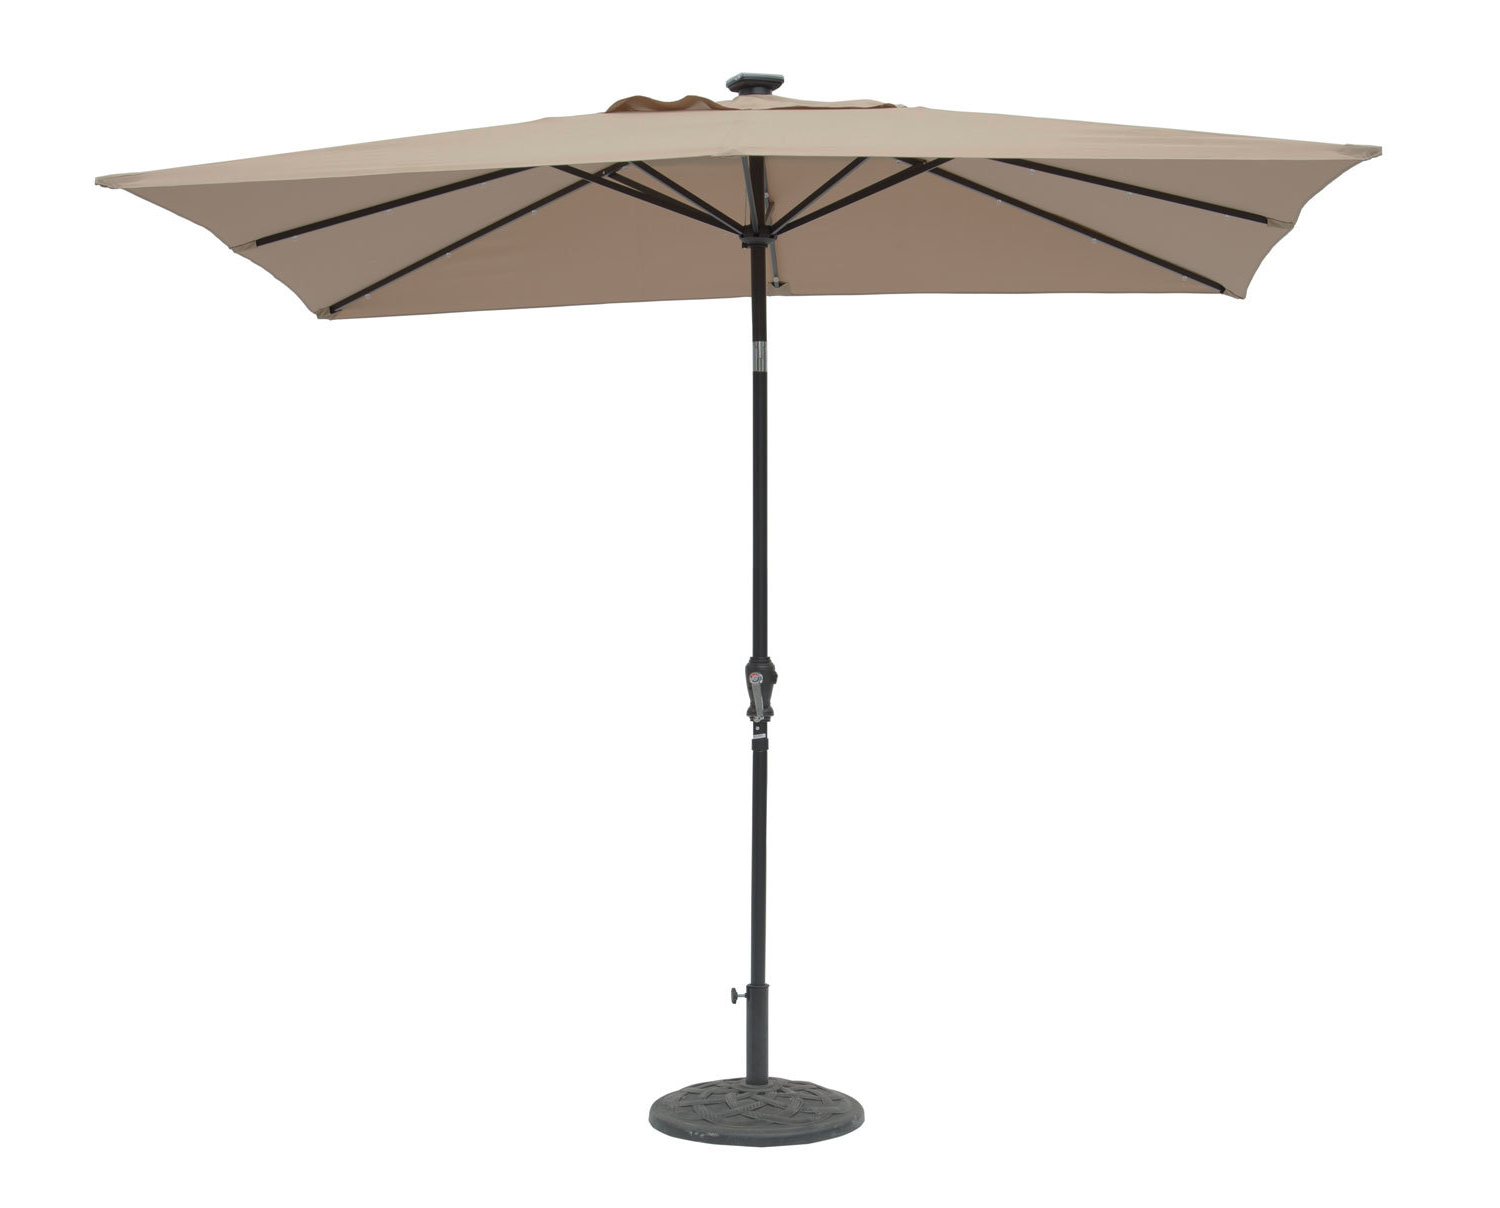 Kamila 9' X 7' Rectangular Lighted Umbrella Pertaining To Well Known Dena Rectangular Market Umbrellas (Gallery 11 of 20)